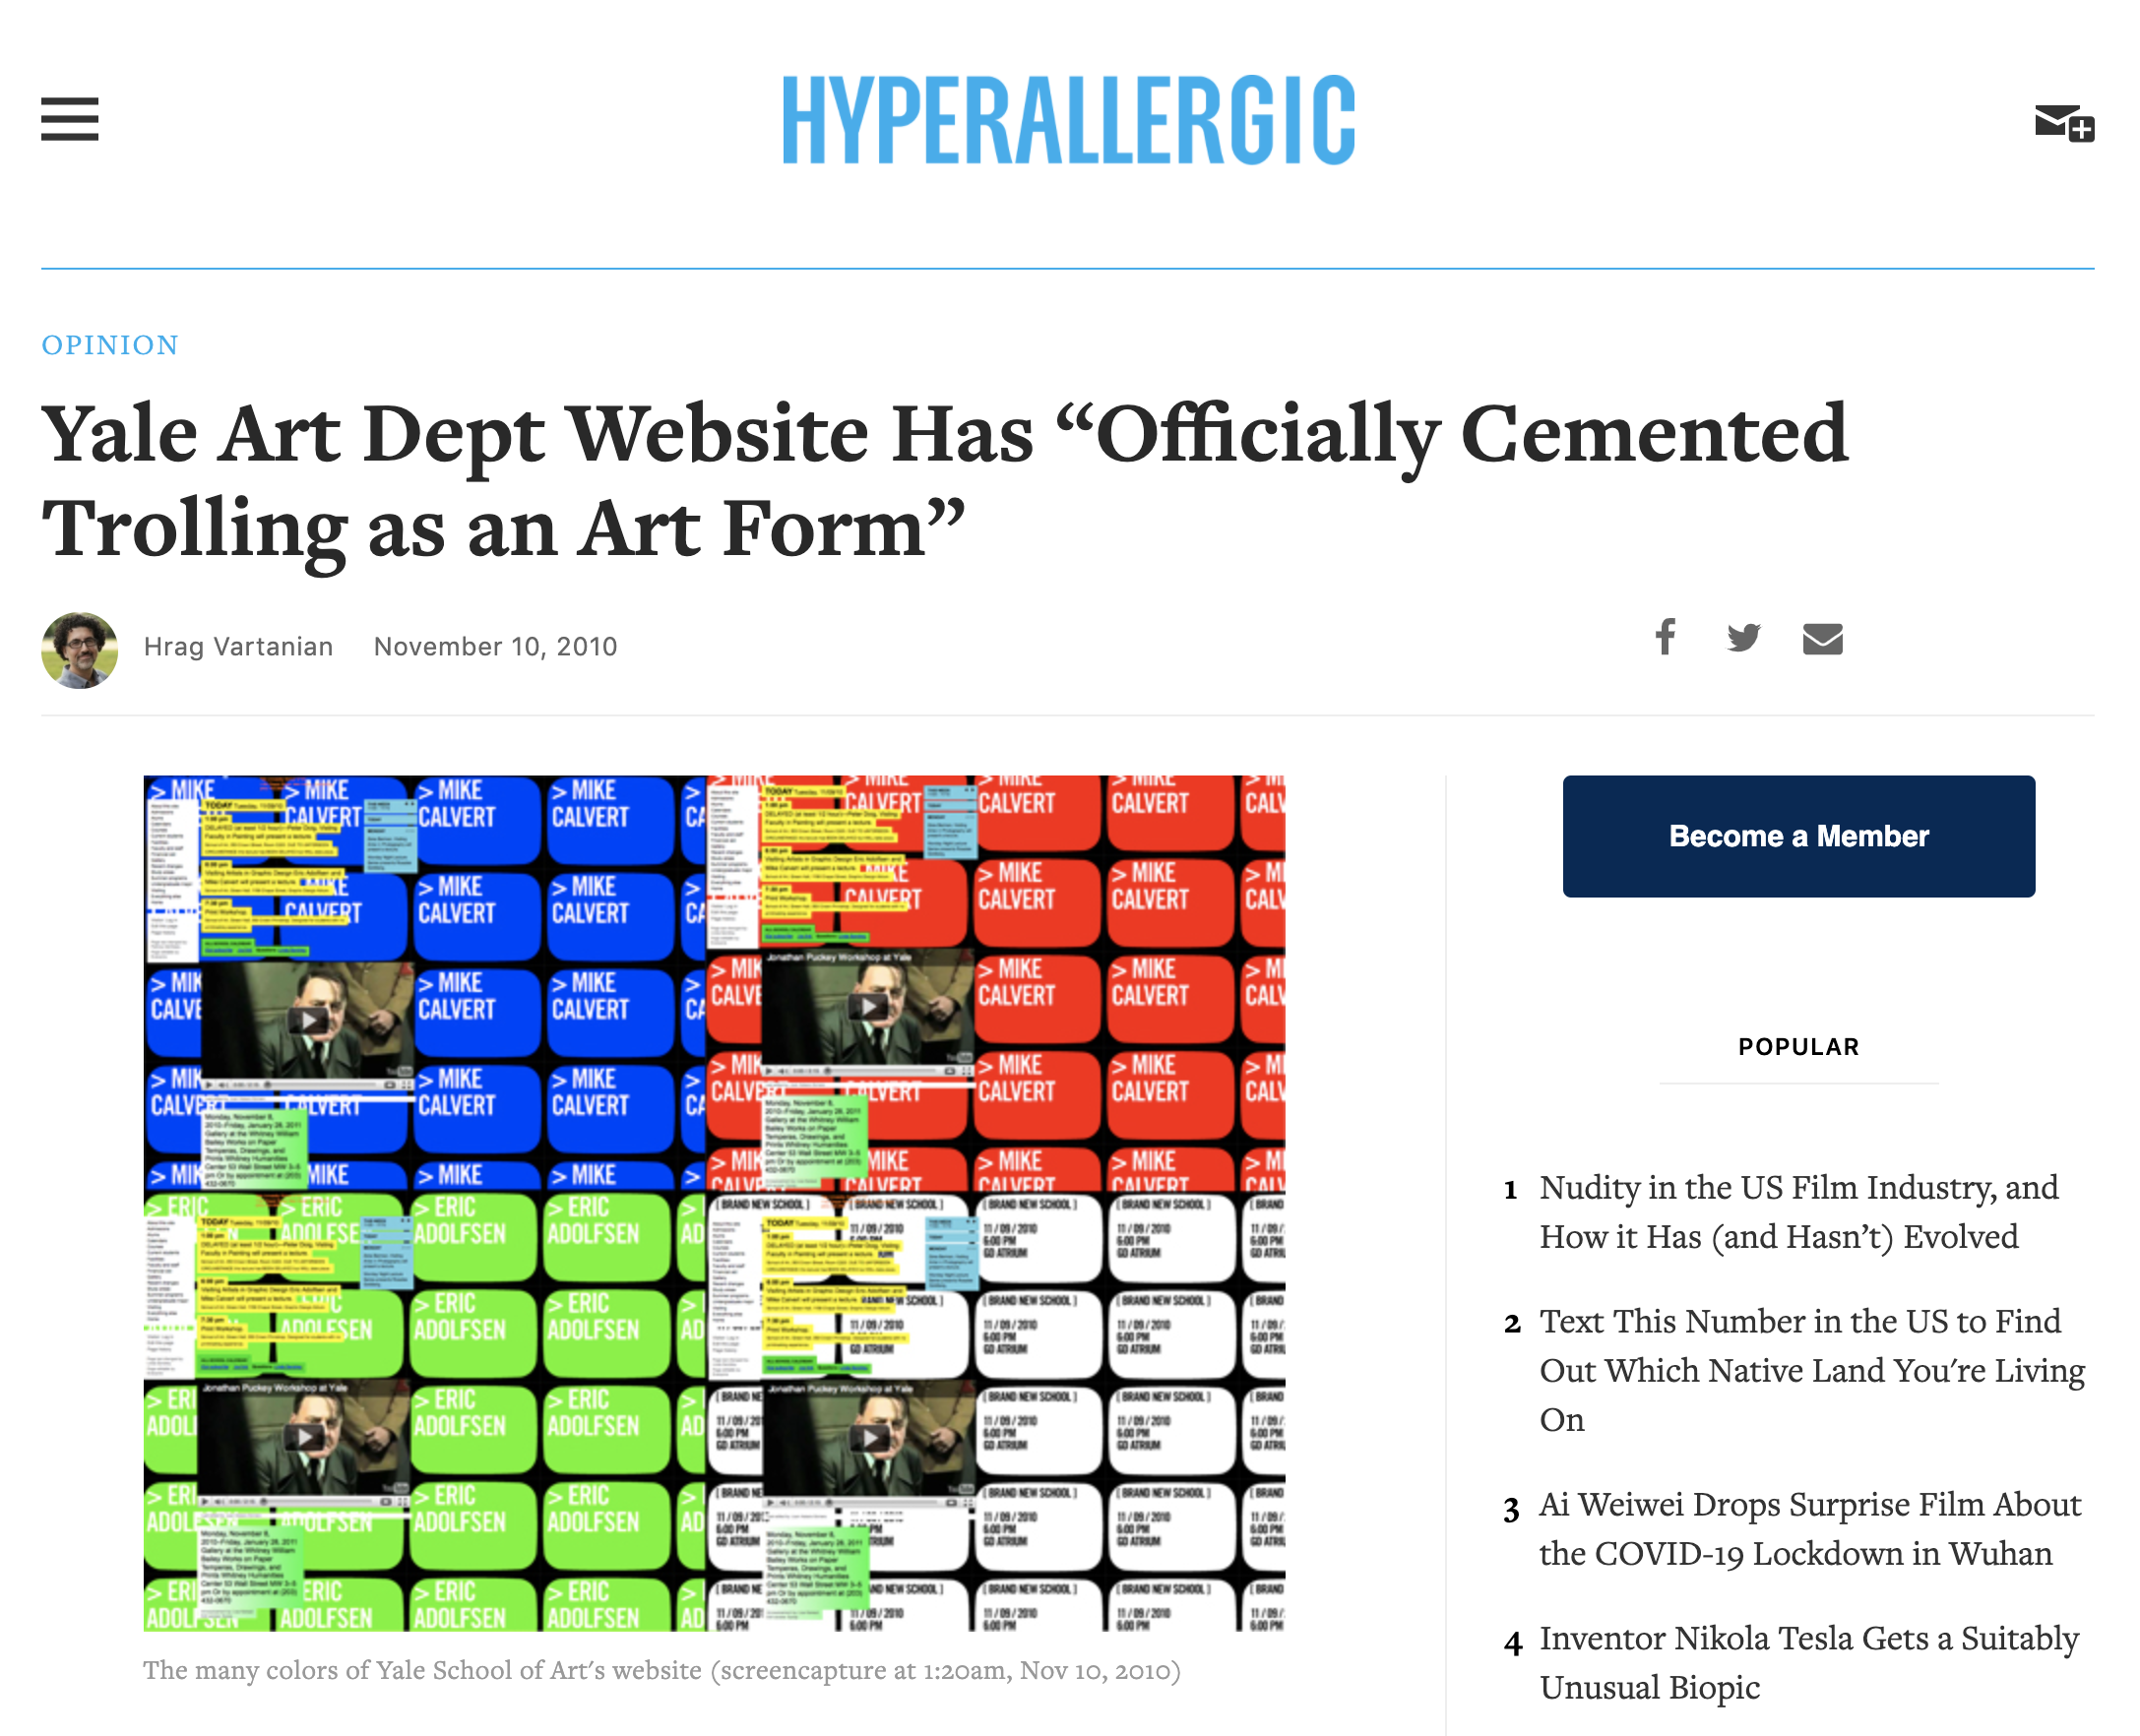 Screenshot of the Hyperallergic article linked to above.